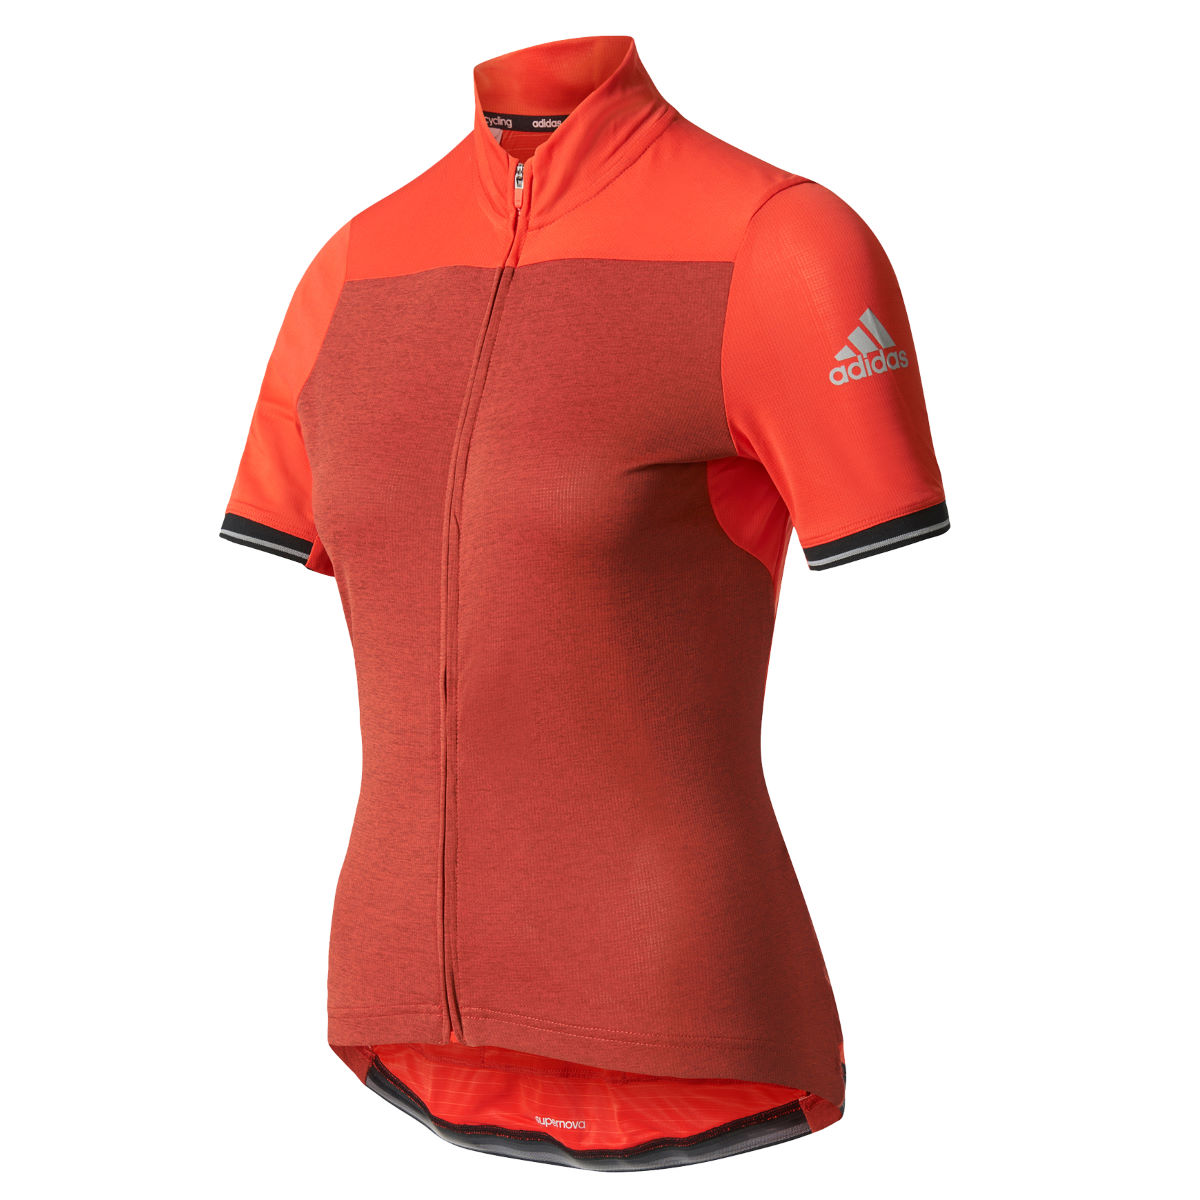 Maillot Femme Adidas Cycling Clima Chill (manches courtes) - XL